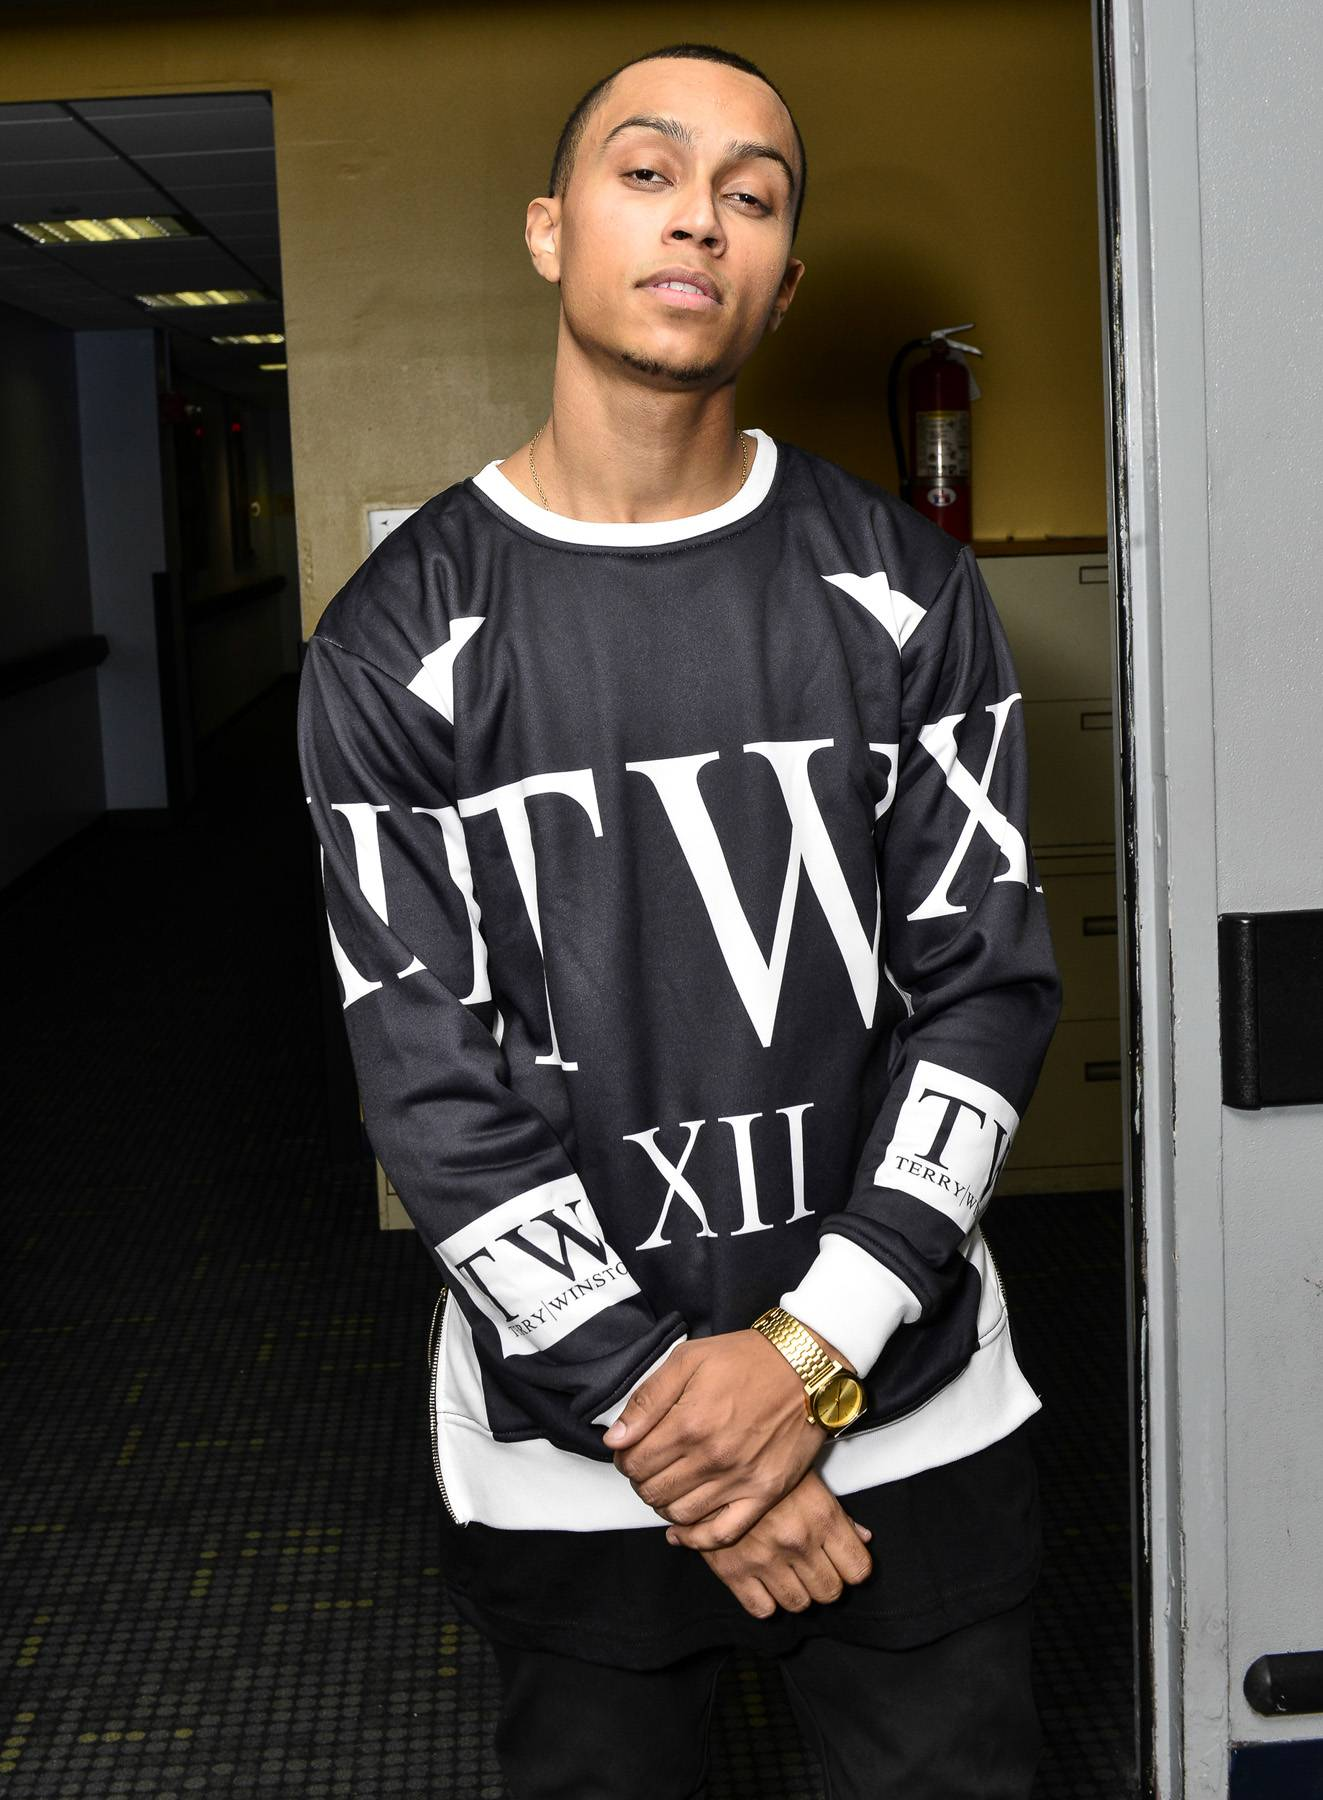 """Sebastian Mikael - March 5, 2014 - The digital World Premiere of Sebastian Mikael's """"Forever"""" on the 106 & Park App was a smash!Watch a VIPeek of the video now!"""